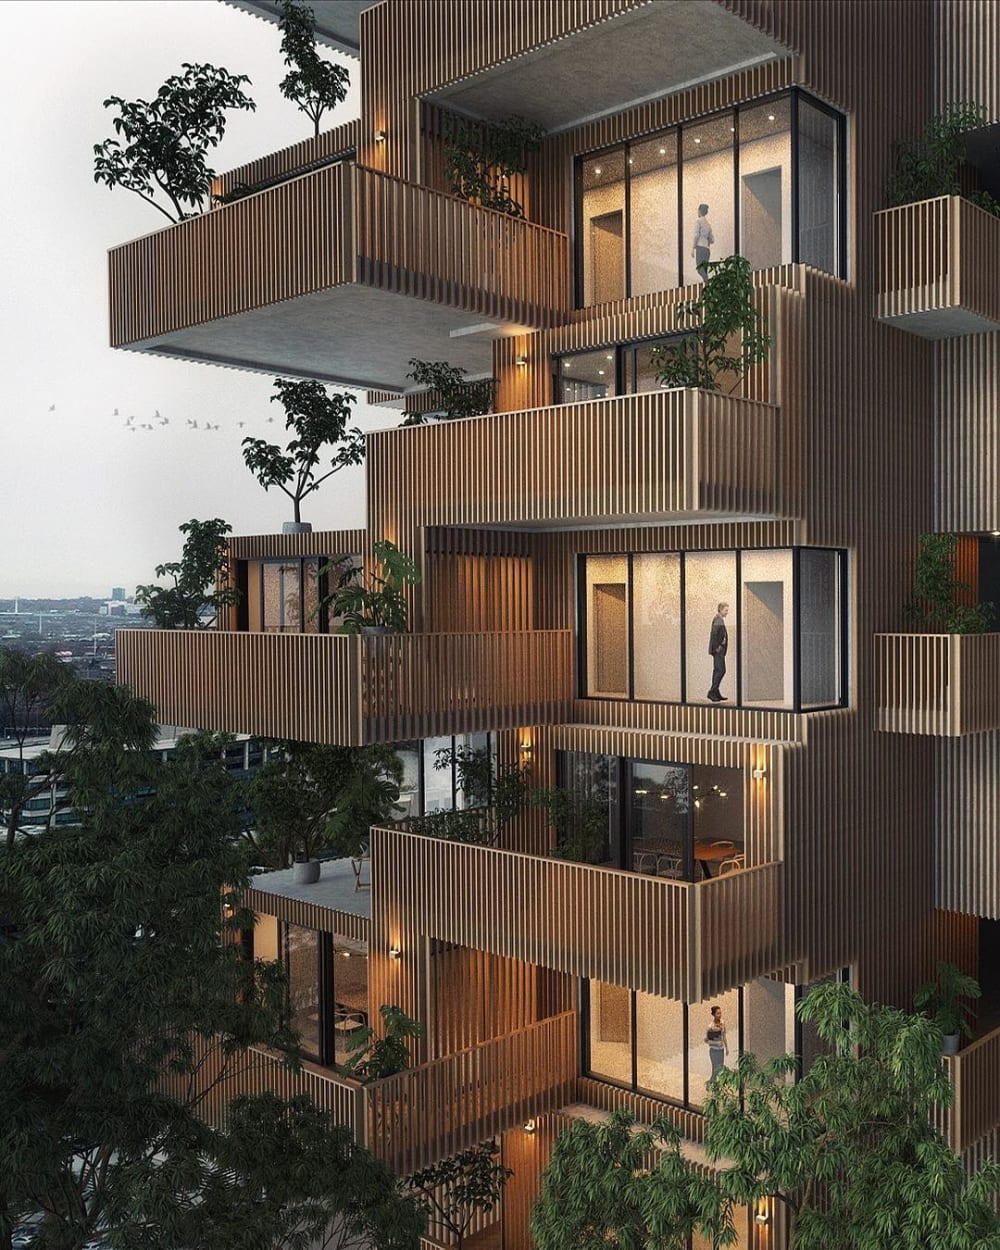 """Block of flats made of wood timber with plants on each balcony.<span class=""""sr-only""""> (opened in a new window/tab)</span>"""